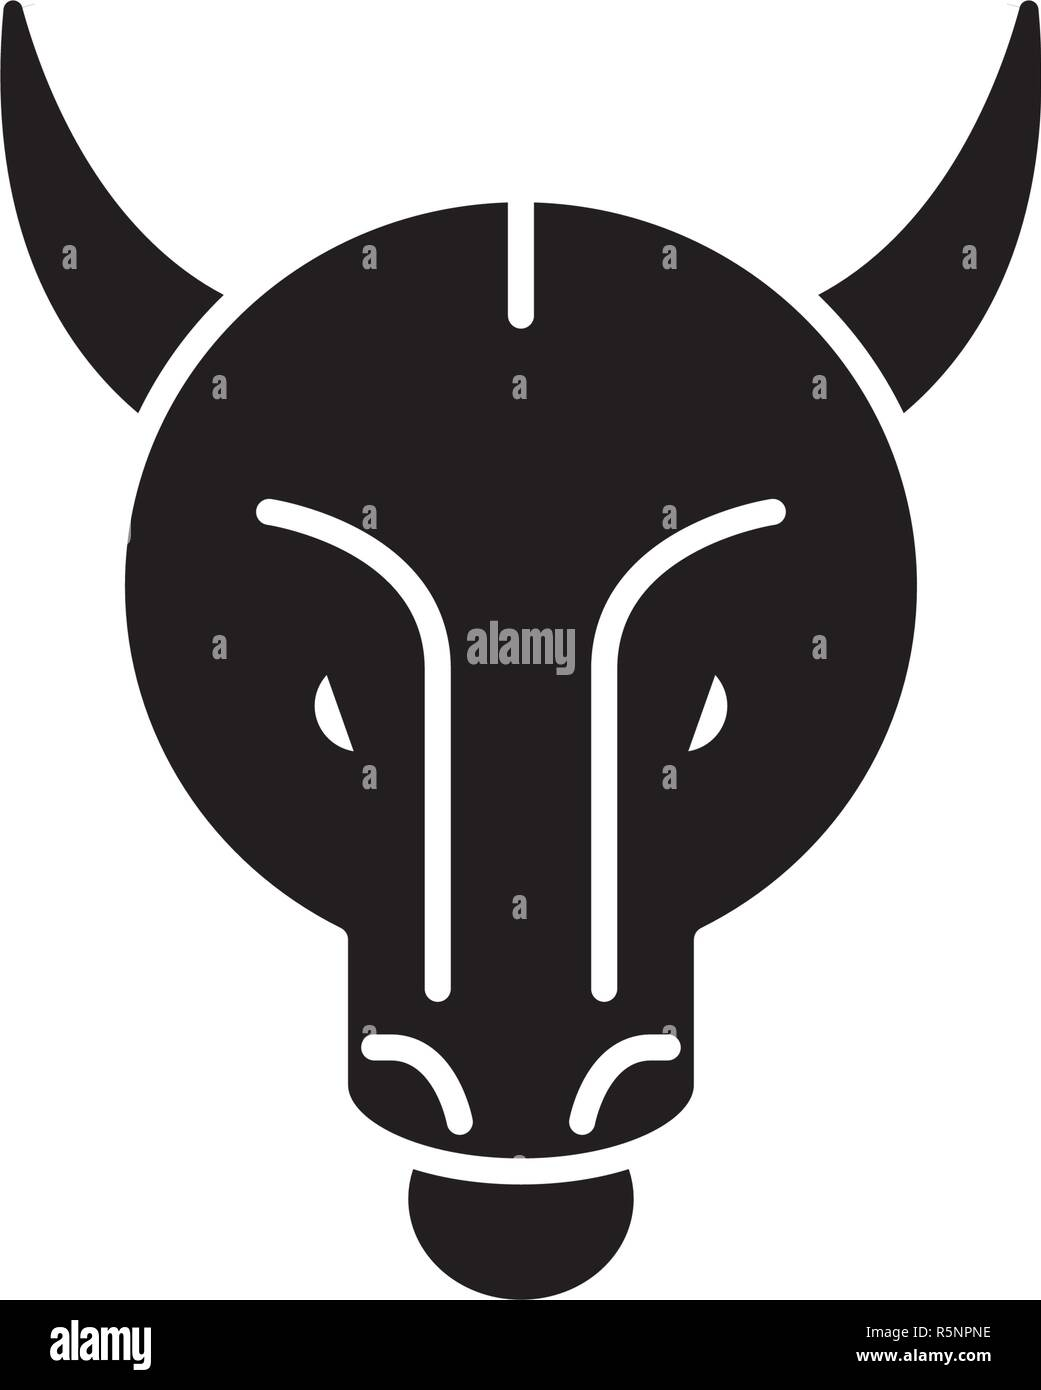 Bullish trend black icon, vector sign on isolated background. Bullish trend concept symbol, illustration  - Stock Vector